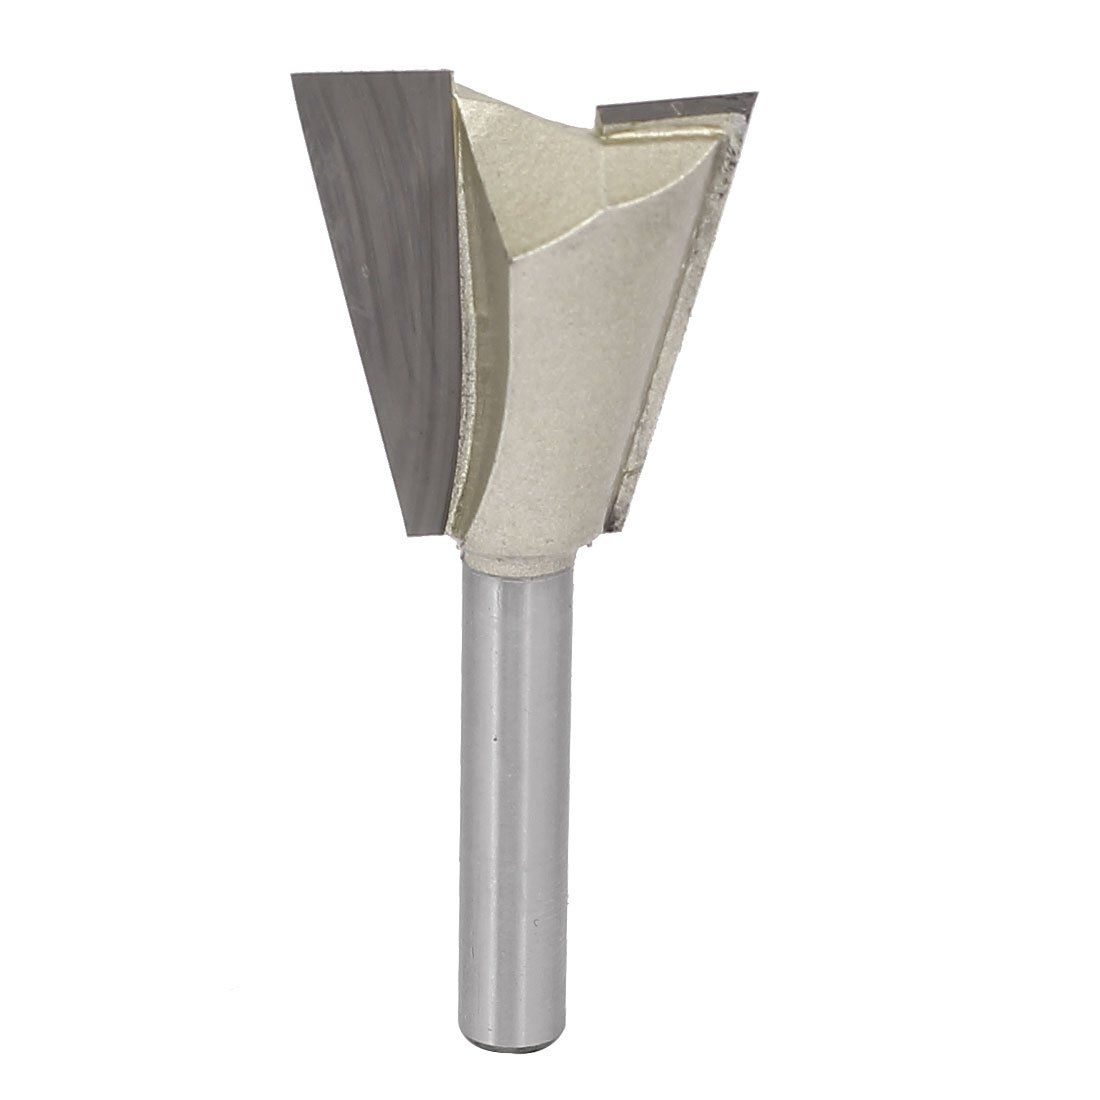 uxcell 1/4-inch Round Shank 1-inch Cutting Dia Woodwork Dovetail Router Bit